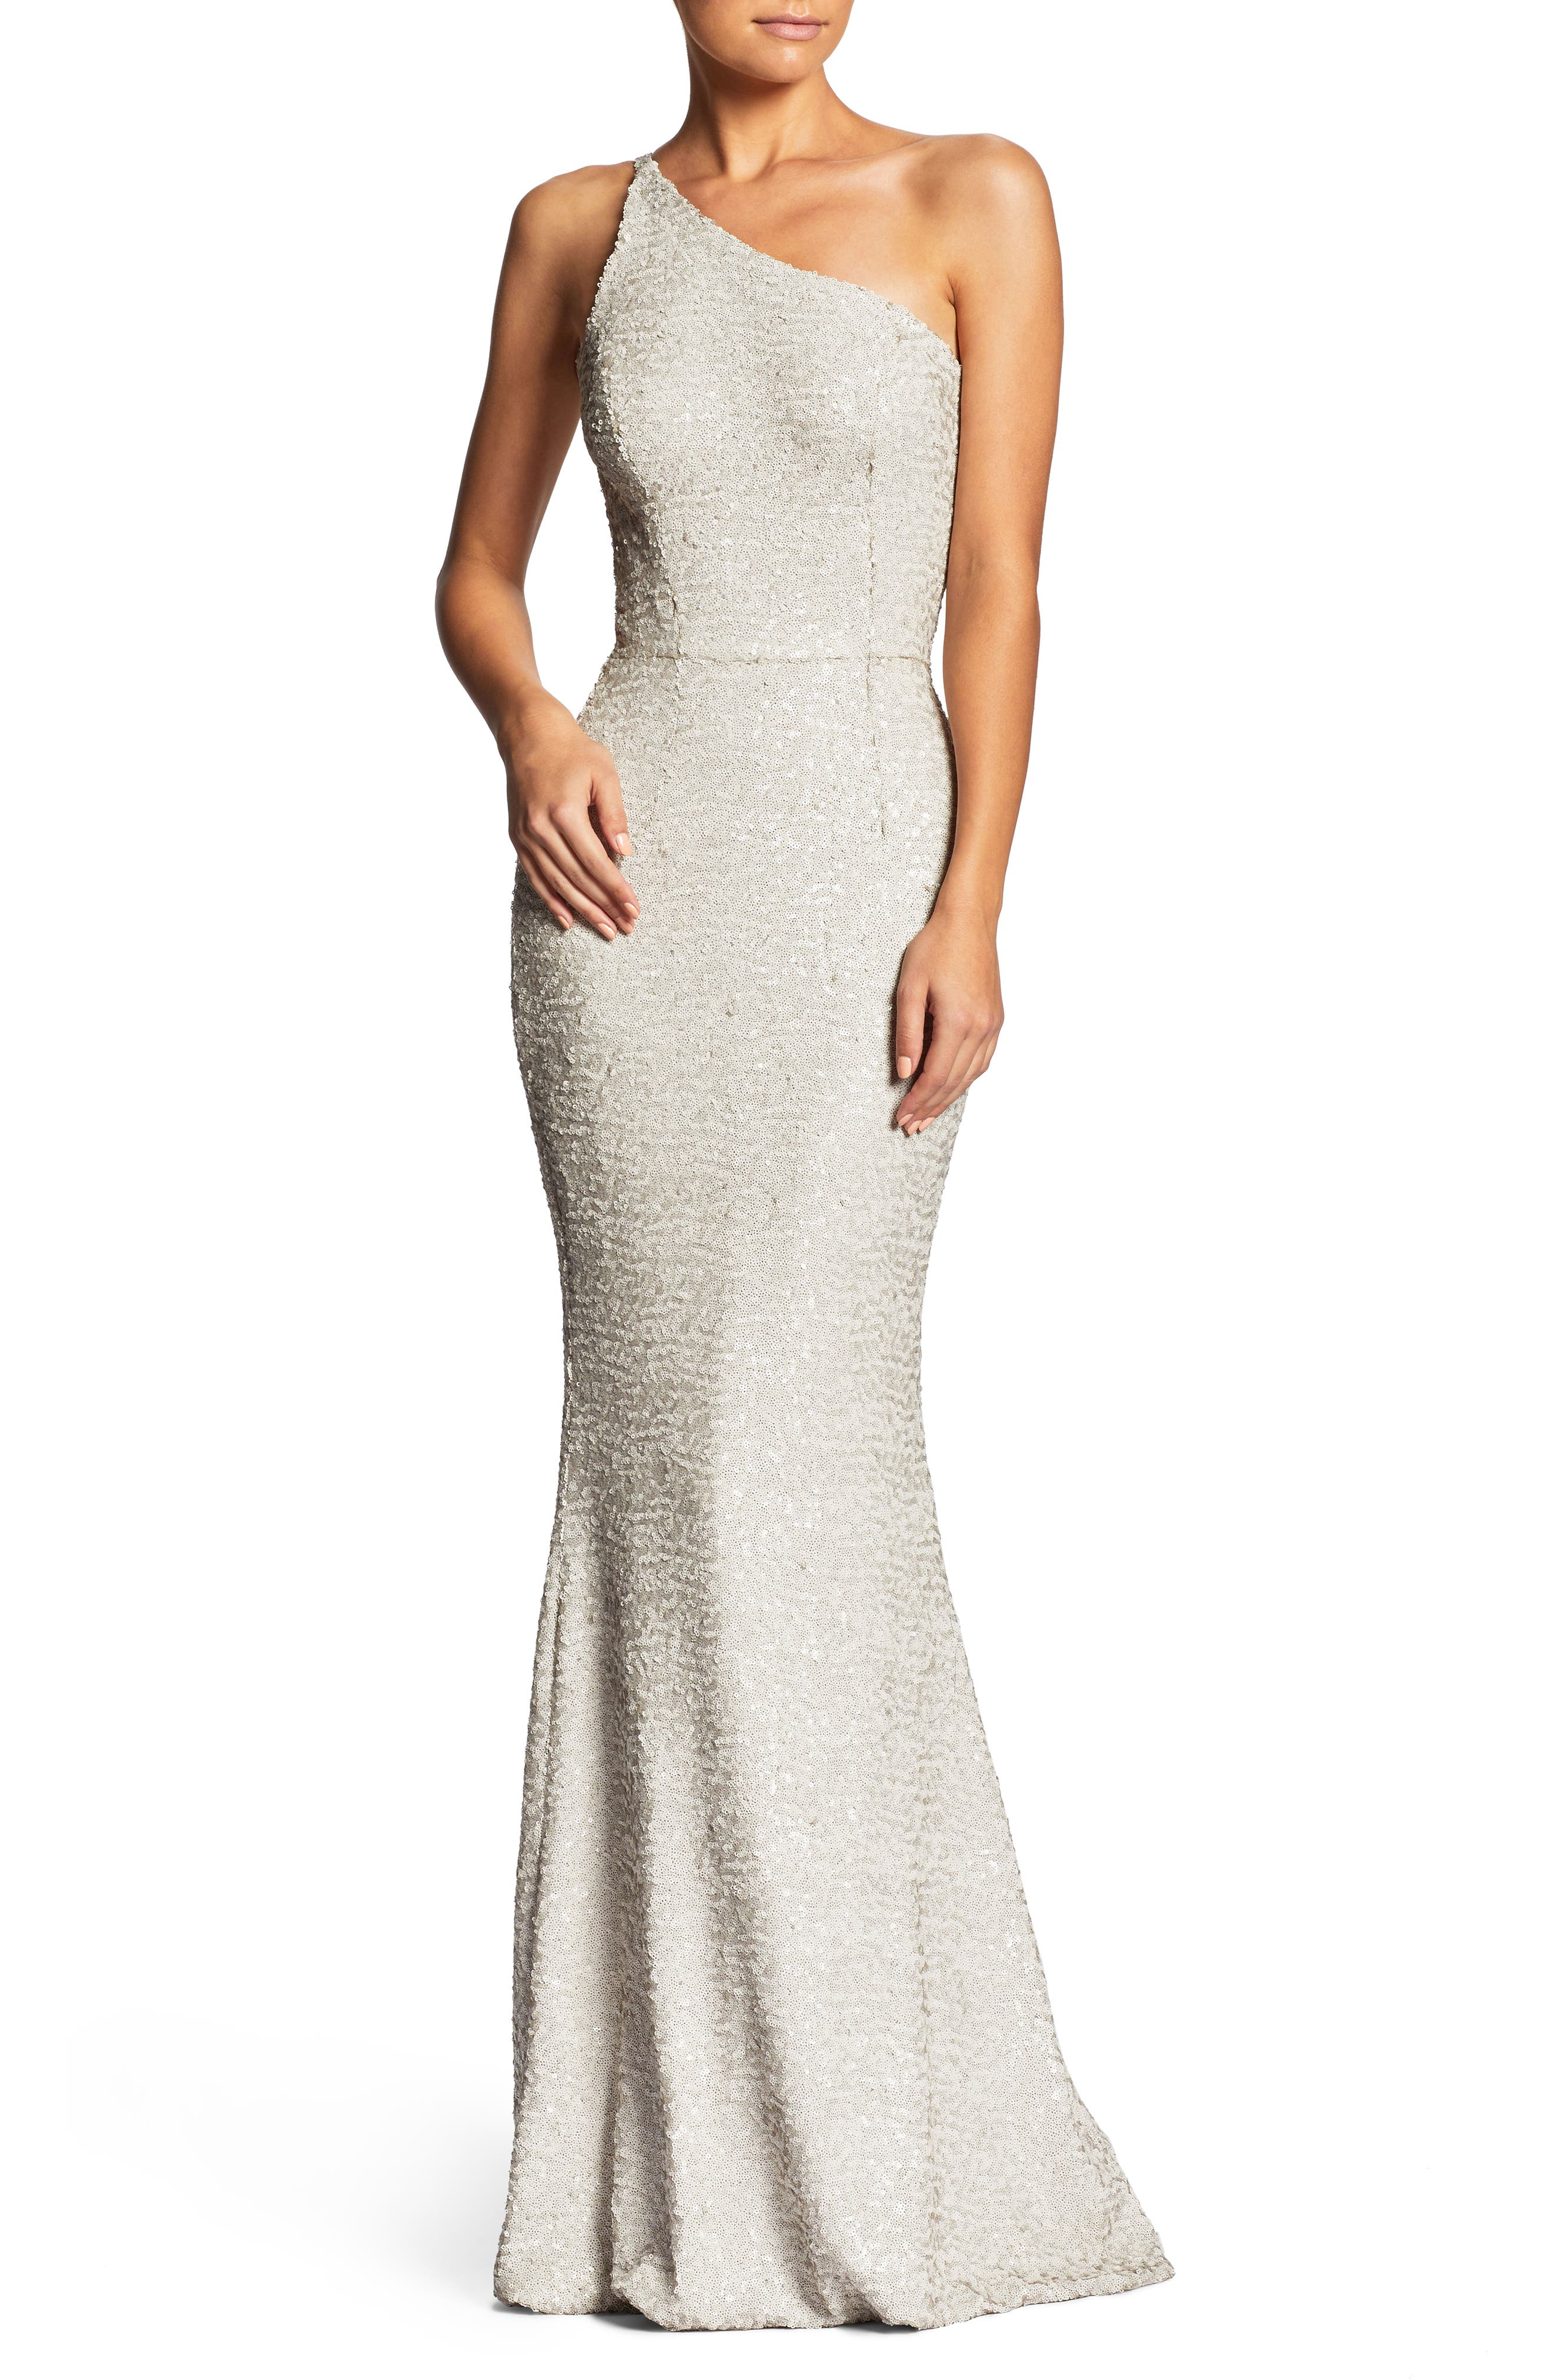 DRESS THE POPULATION, Bella One-Shoulder Mermaid Gown, Main thumbnail 1, color, 020